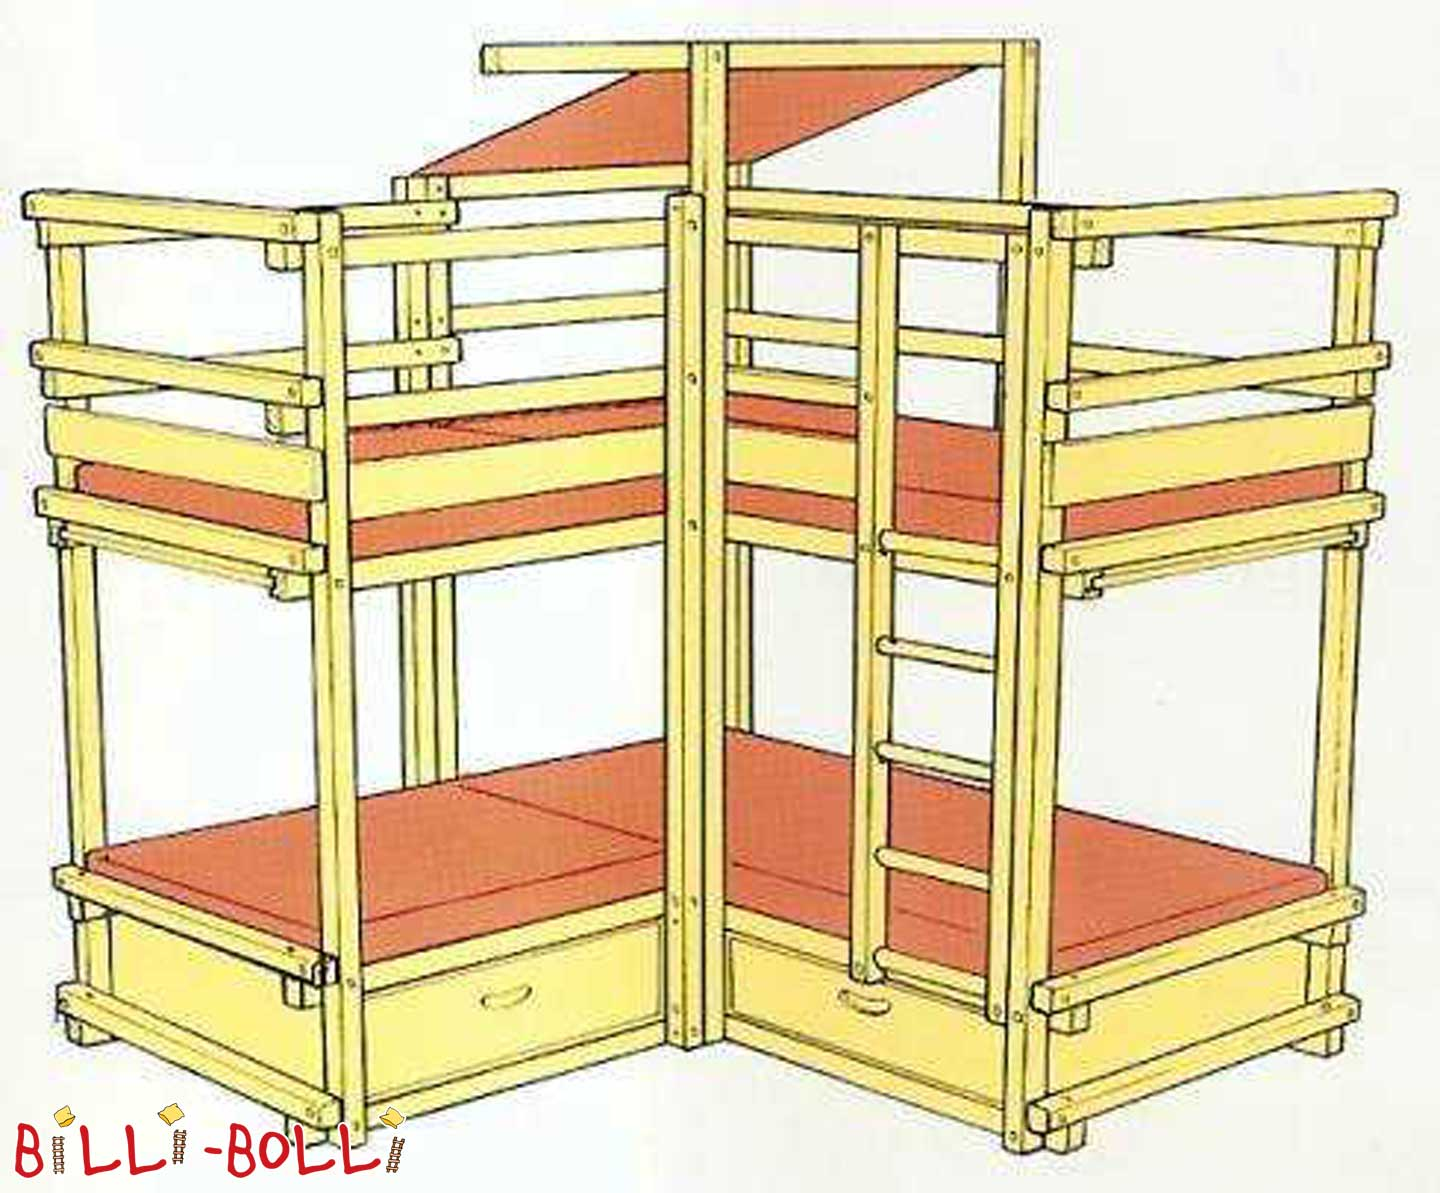 Gullibo Activity Center (second hand kids' bed)